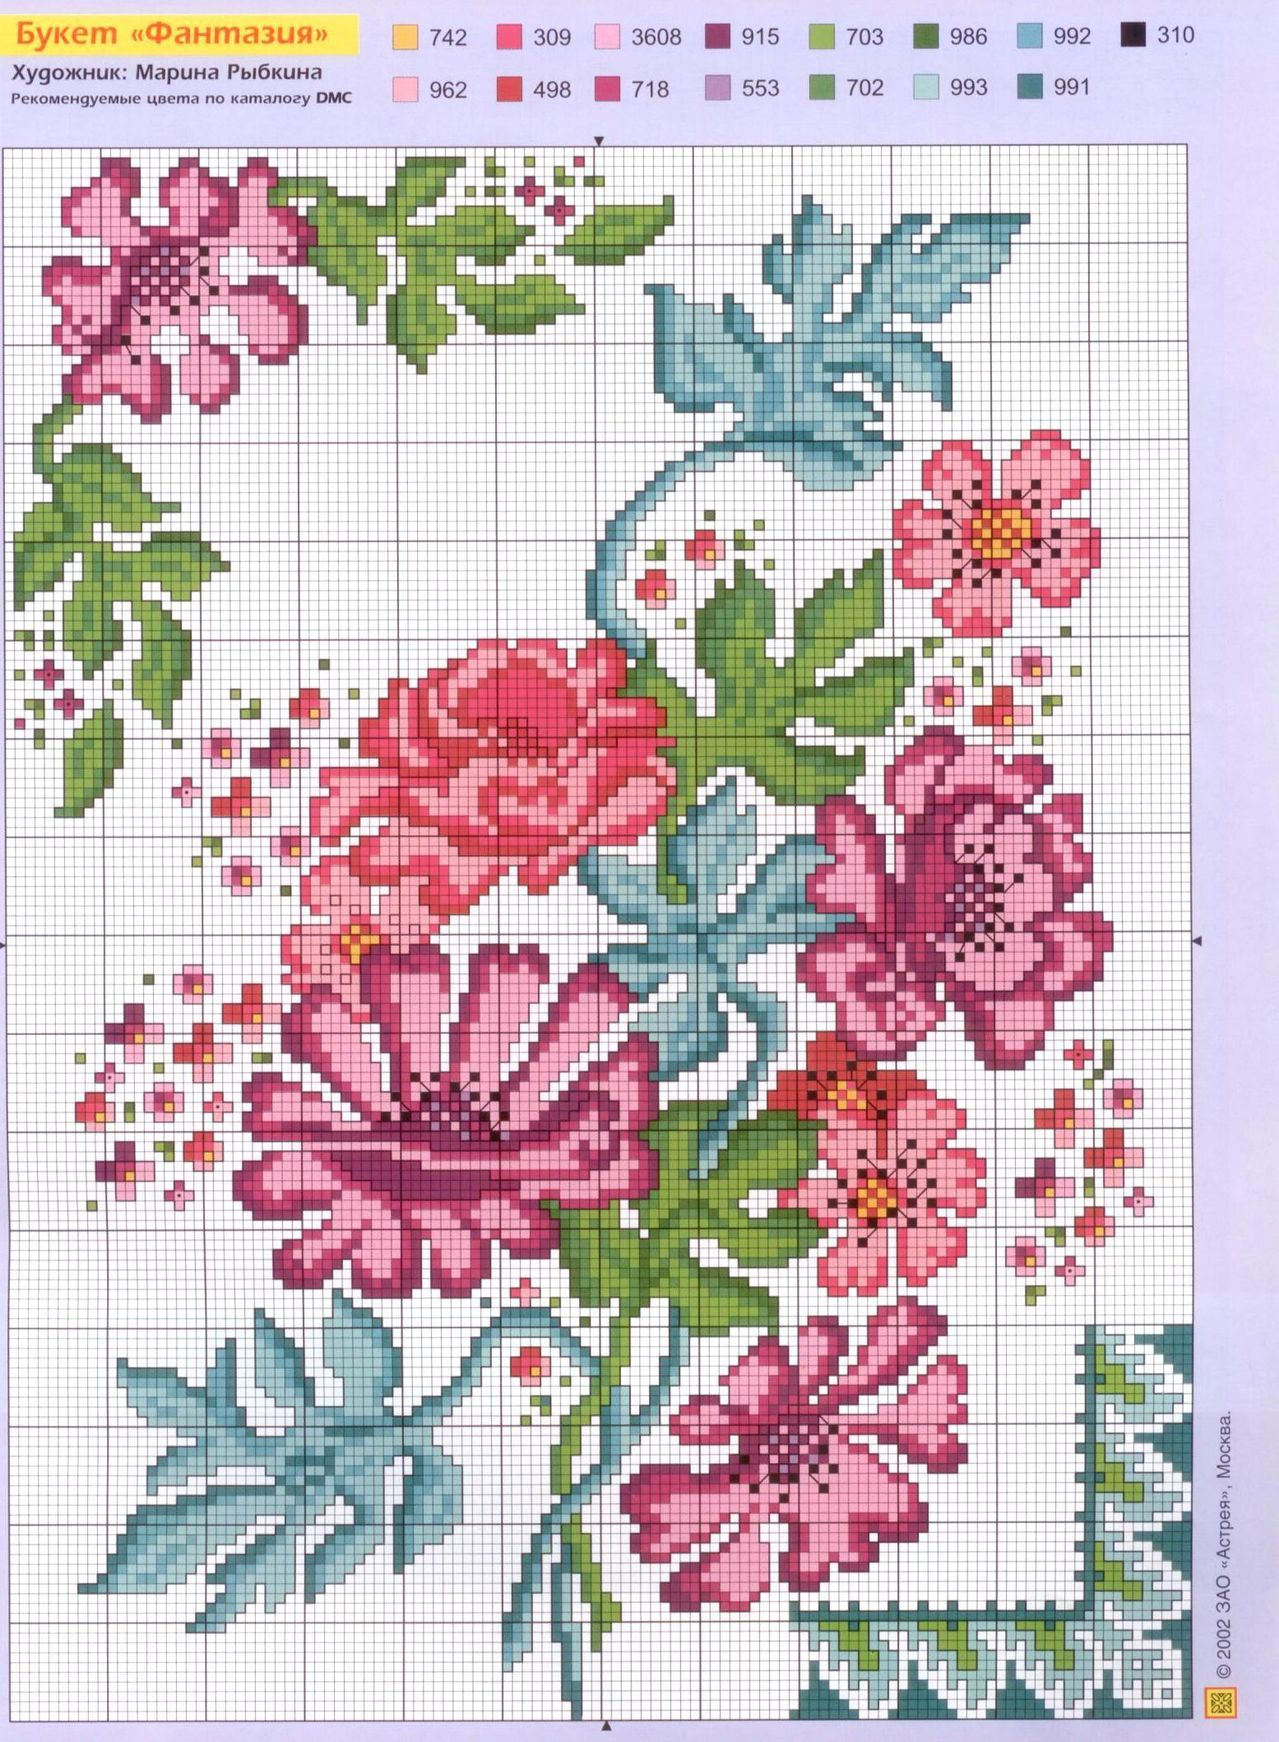 Pin by هیرمند on cross stitch pinterest zoom zoom cross stitch